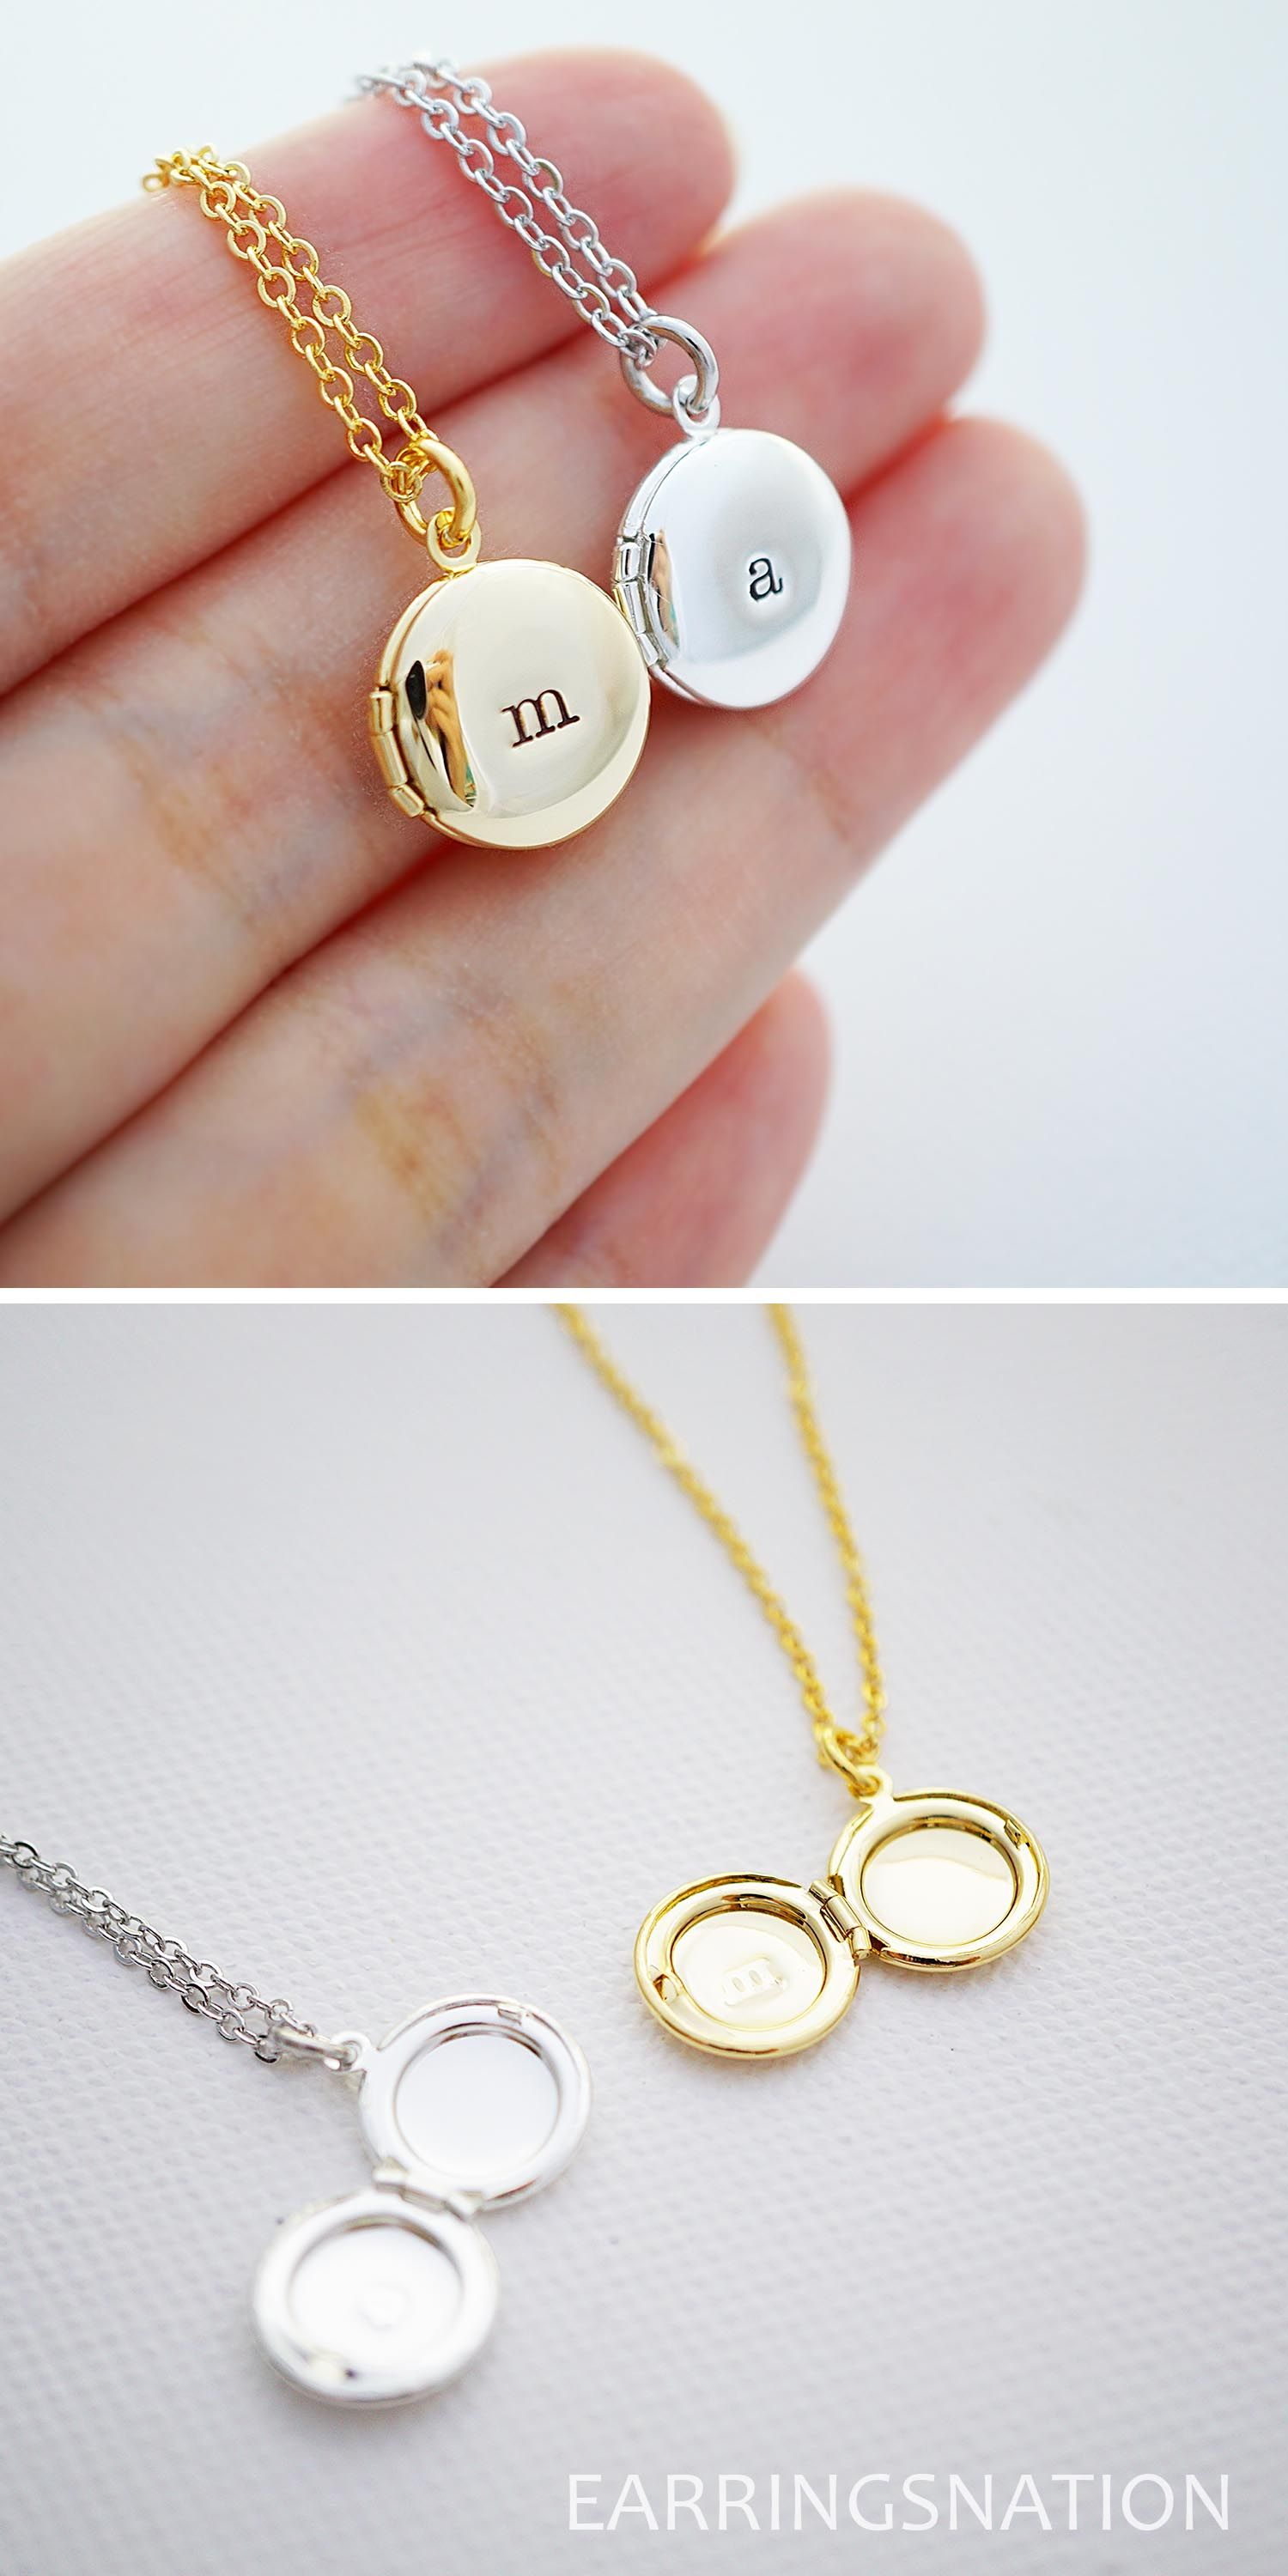 message jewelry day lockets like no other s pendants necklace fullsizerender locket personalized custom for and mother search secret mom necklaces